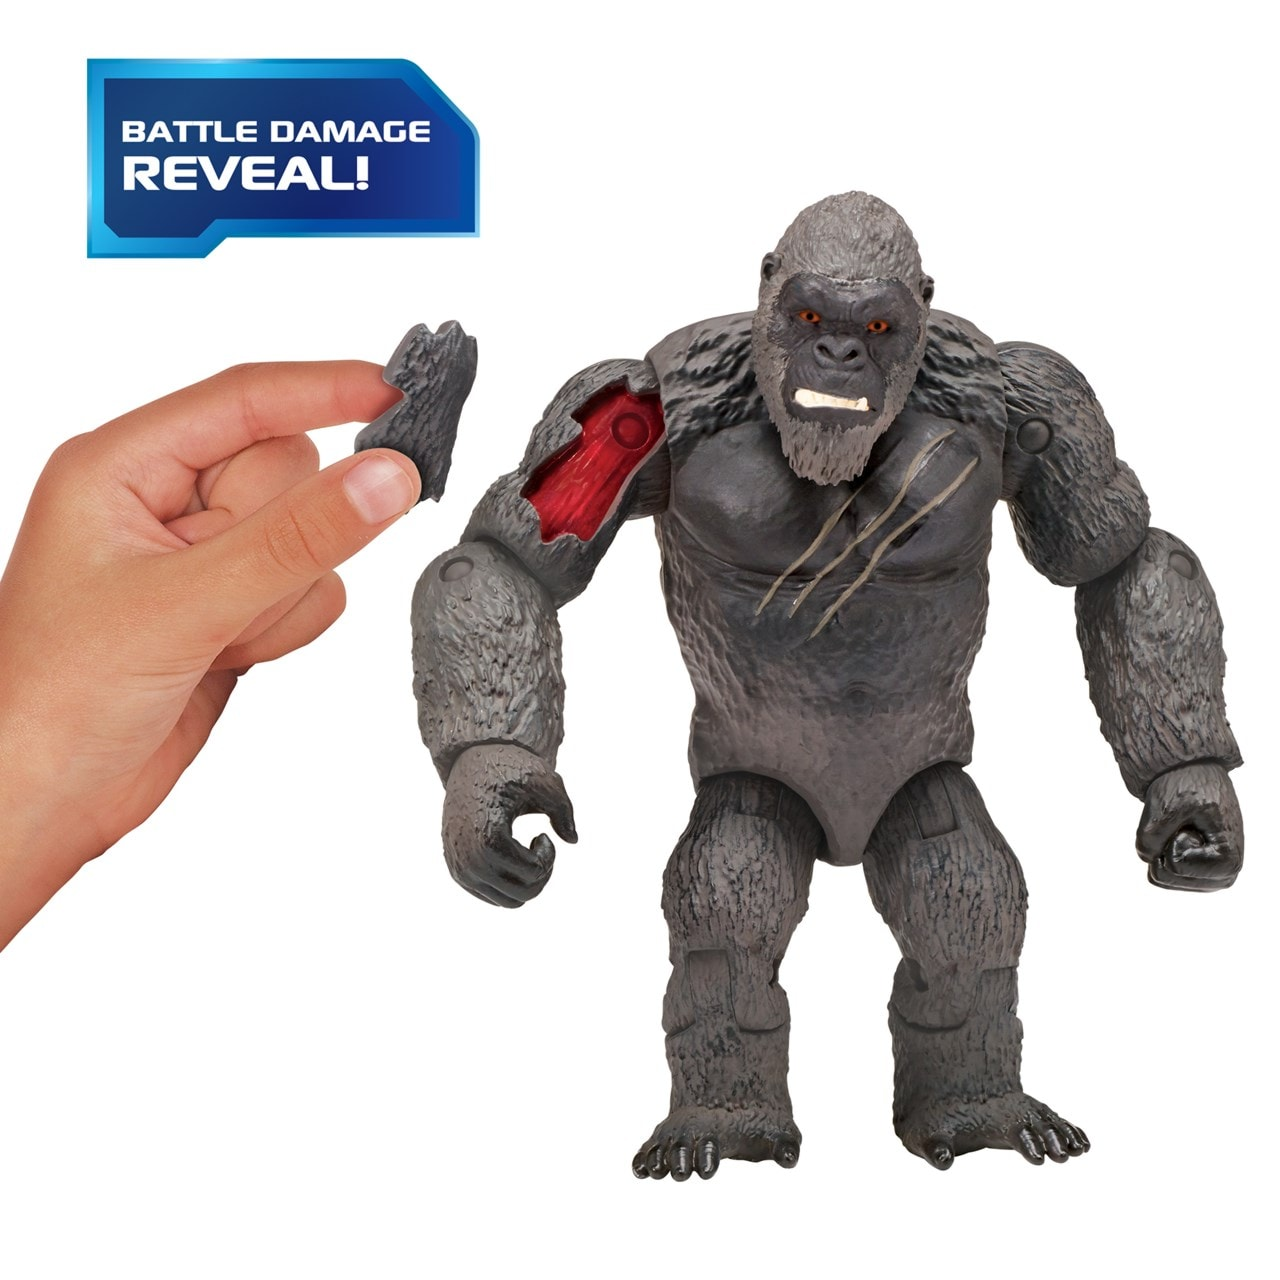 Monsterverse Godzilla vs Kong: Hollow Earth Kong with Fighter Jet Action Figure - 1